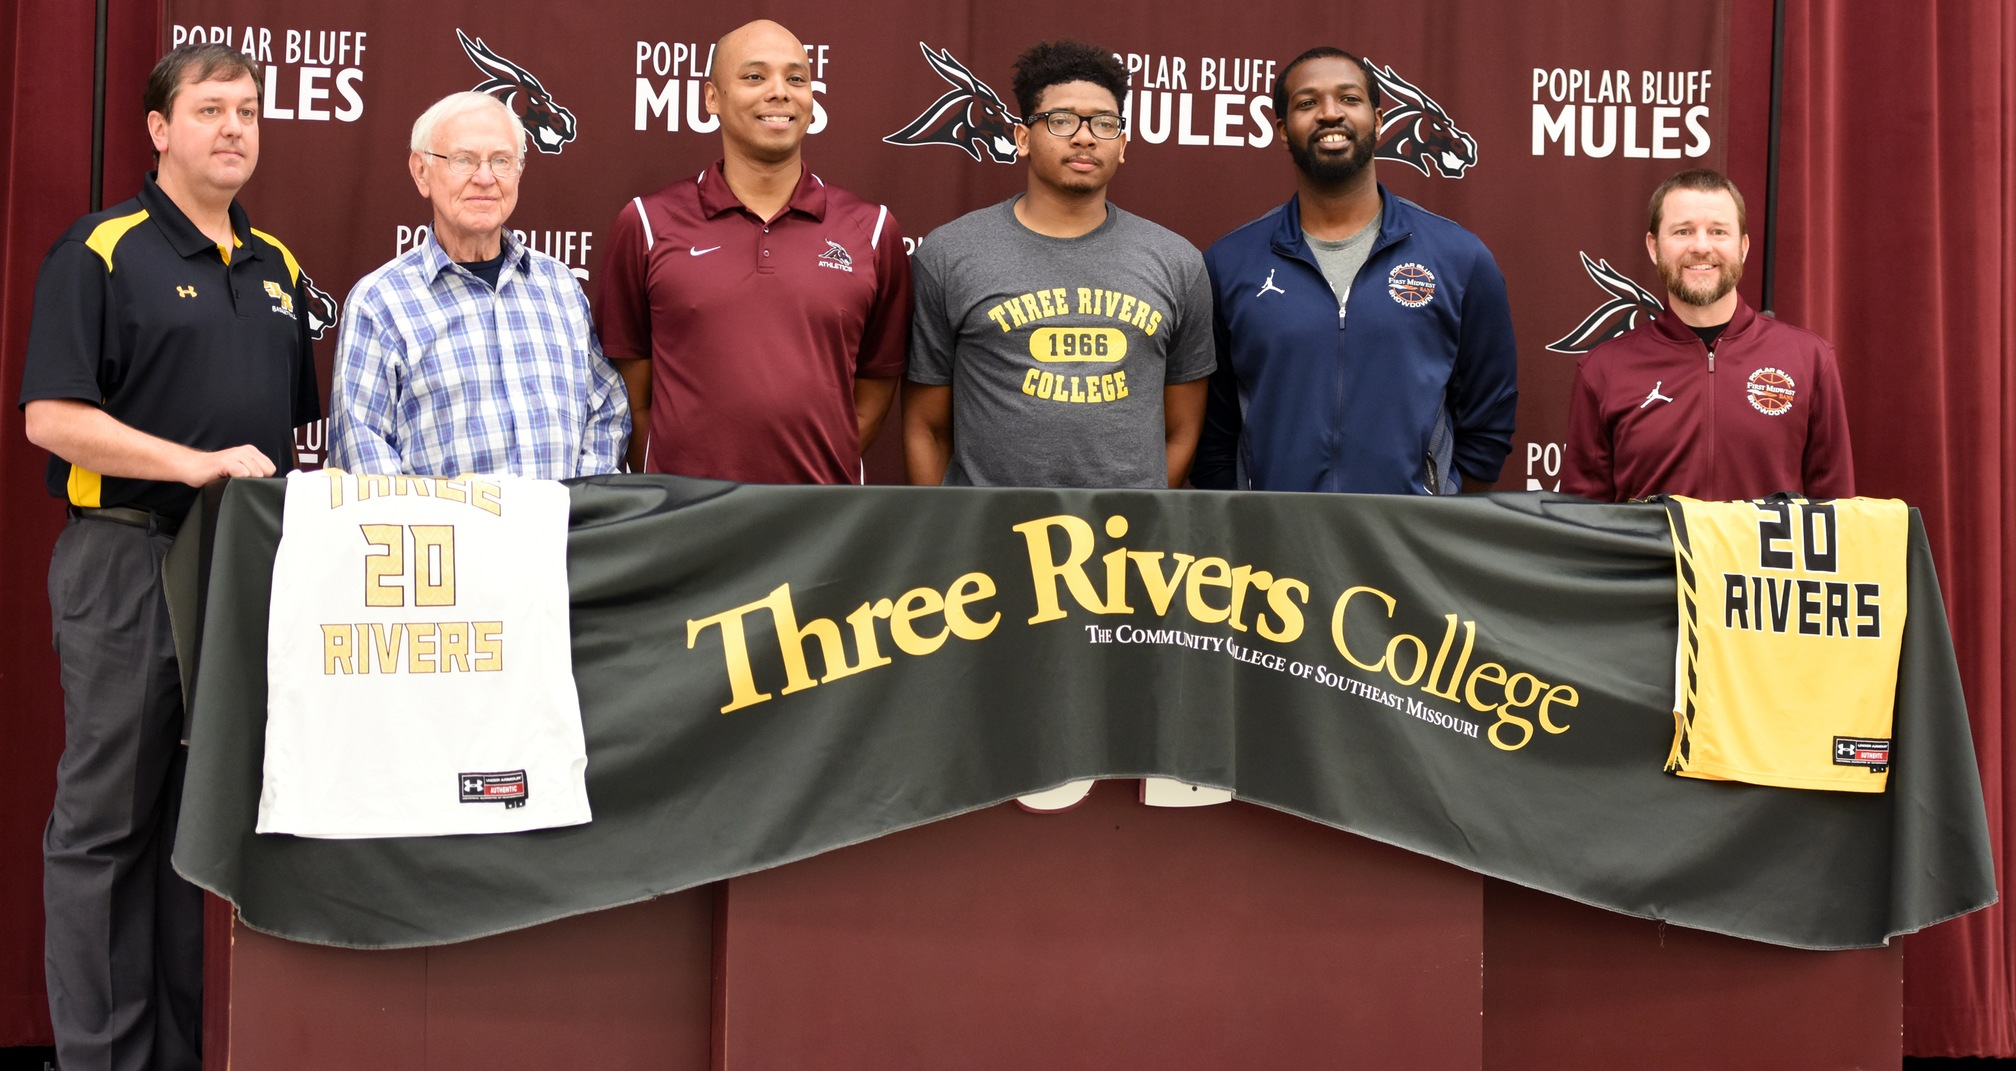 Poplar Bluff senior Dominique Hardimon signs with Three Rivers